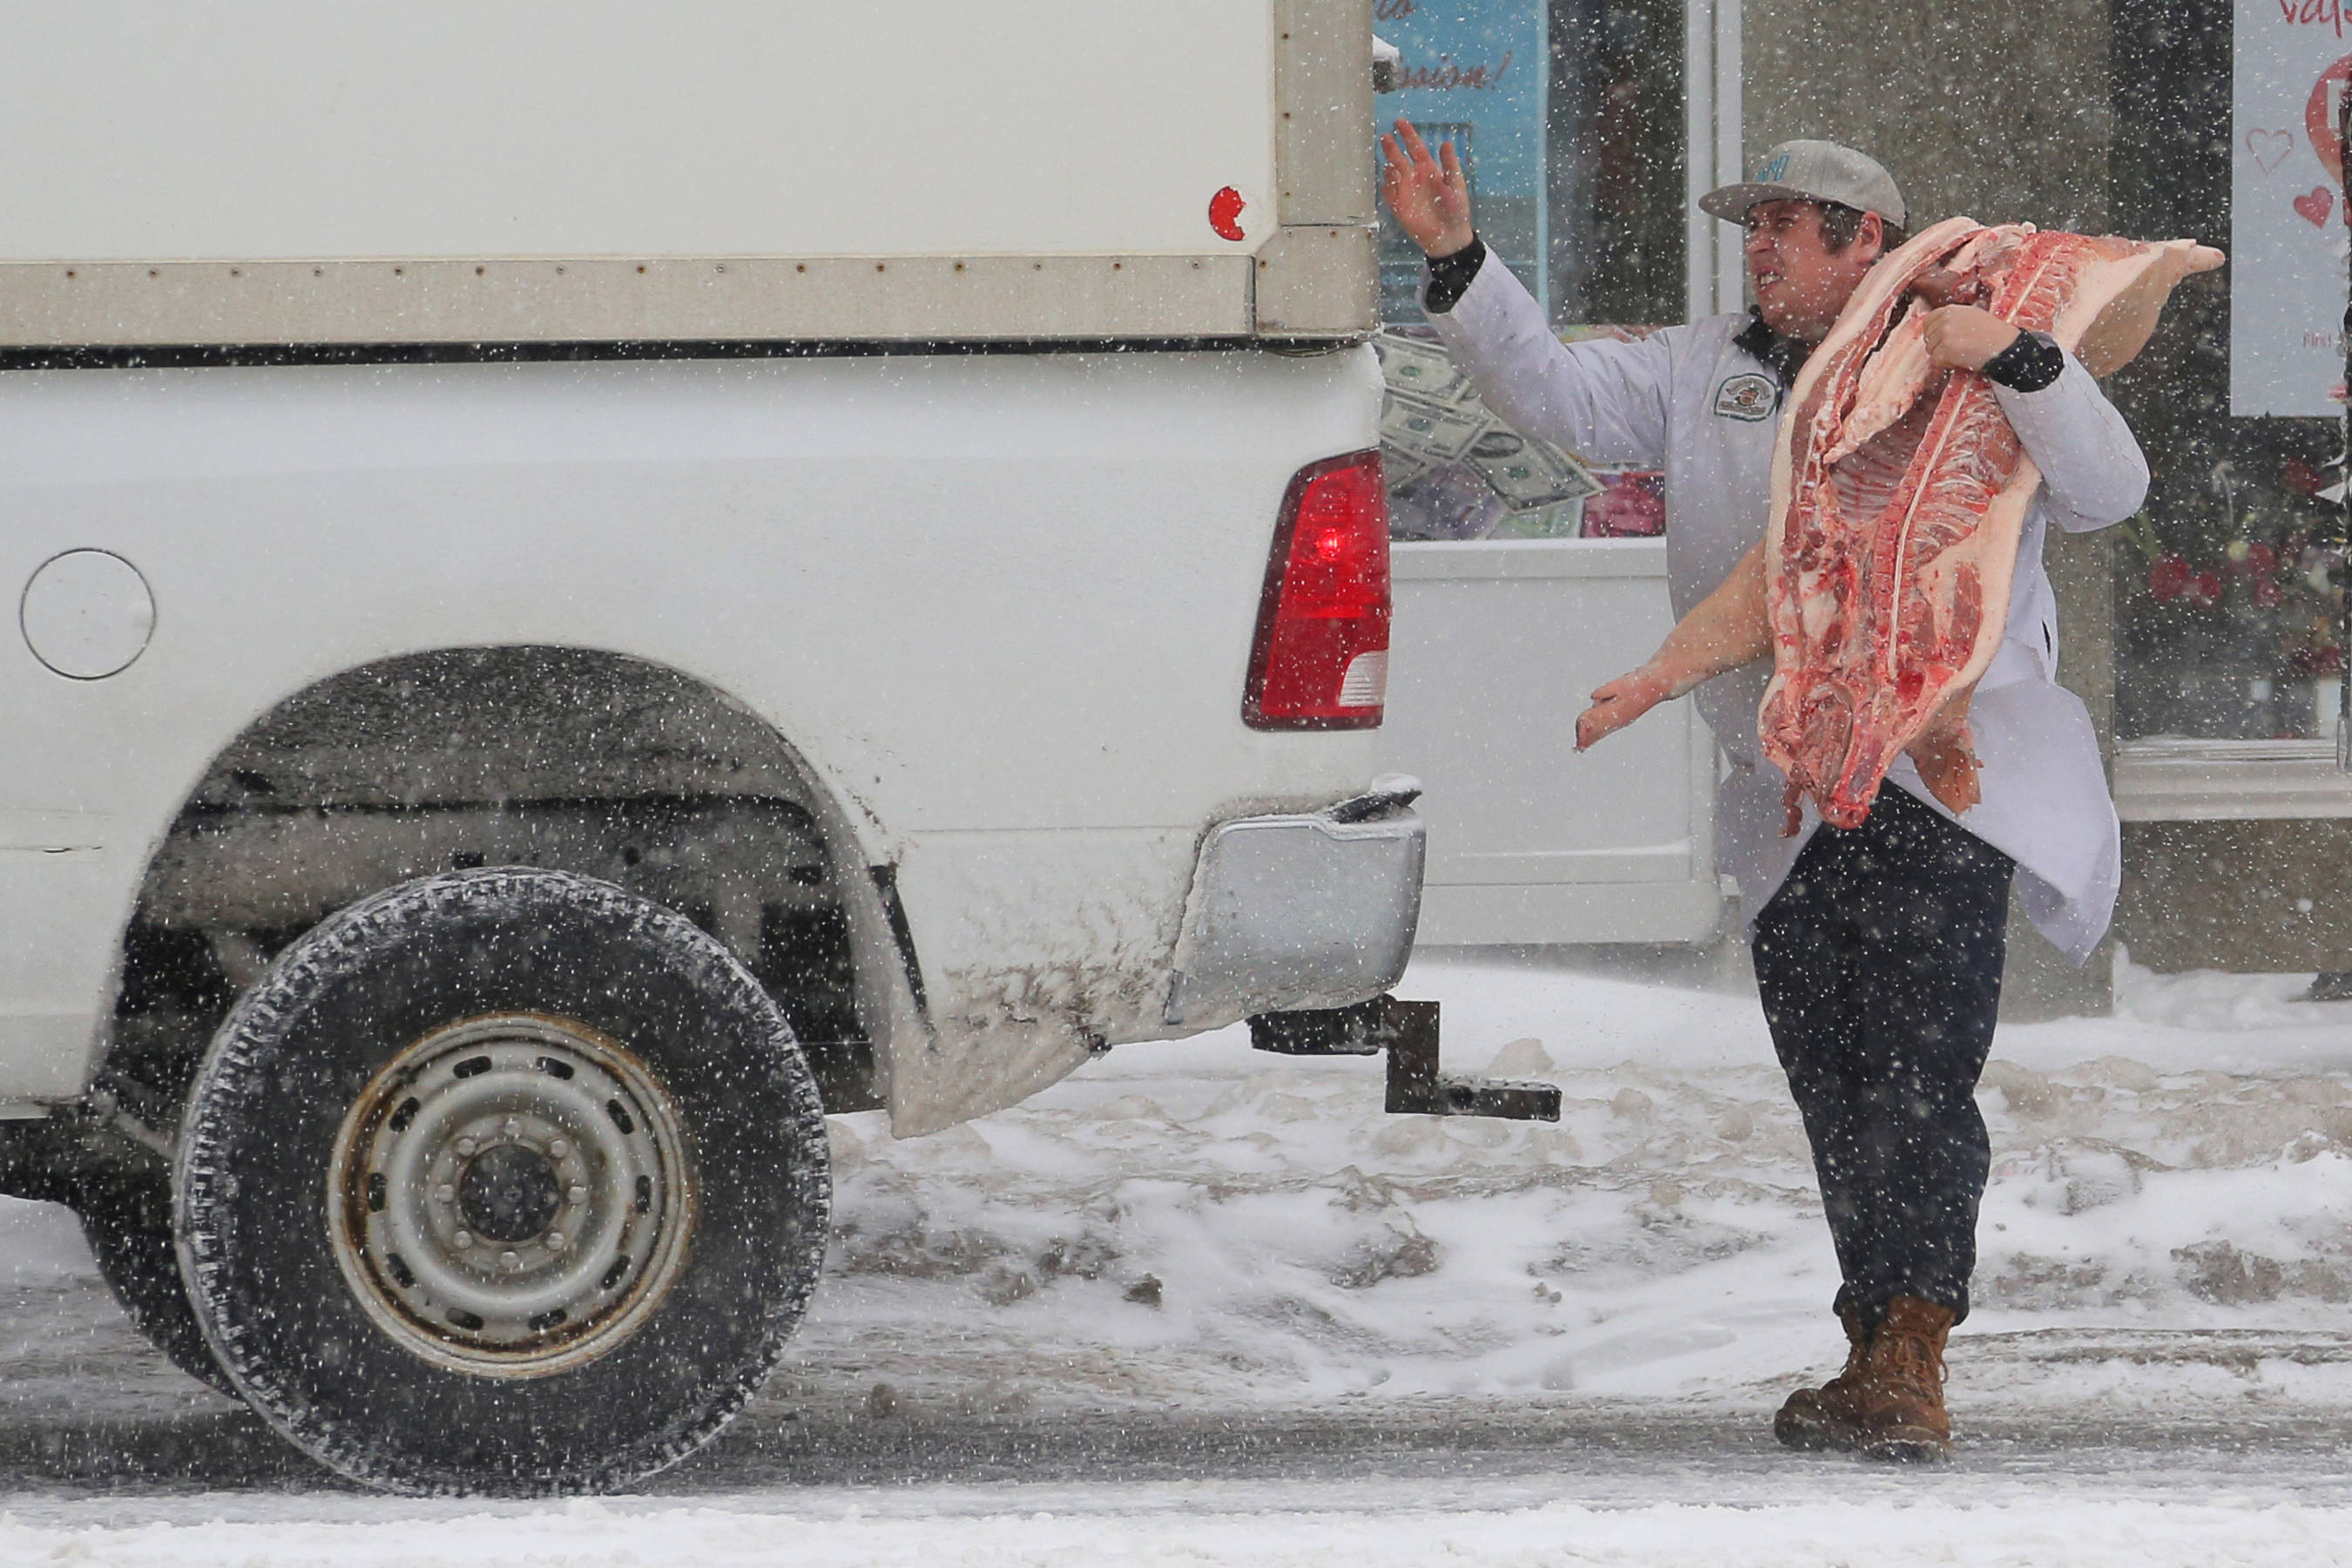 FILE PHOTO: A butcher delivers pork during a snow storm in Toronto